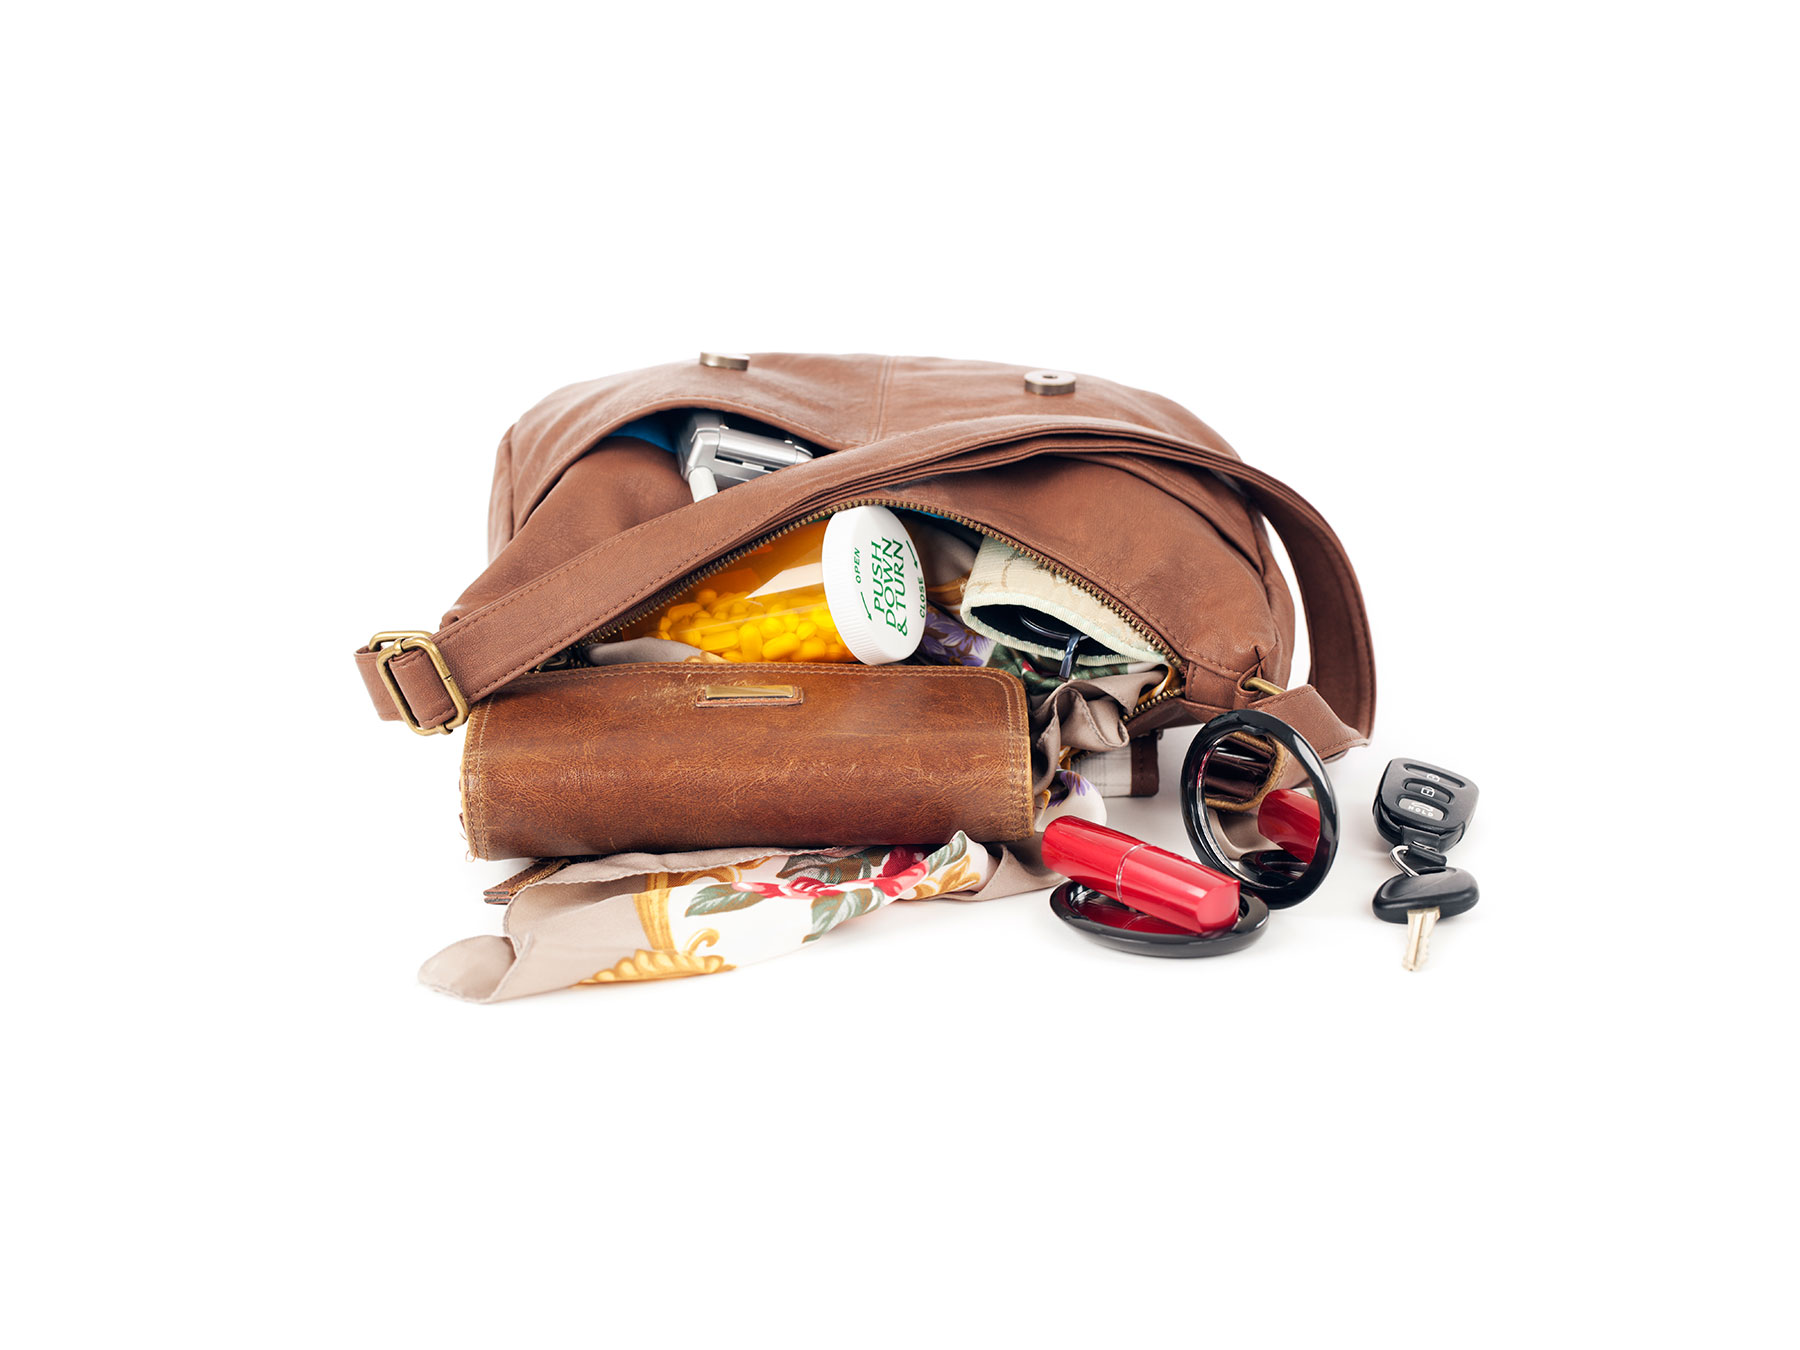 Open Purse With Contents Spilling